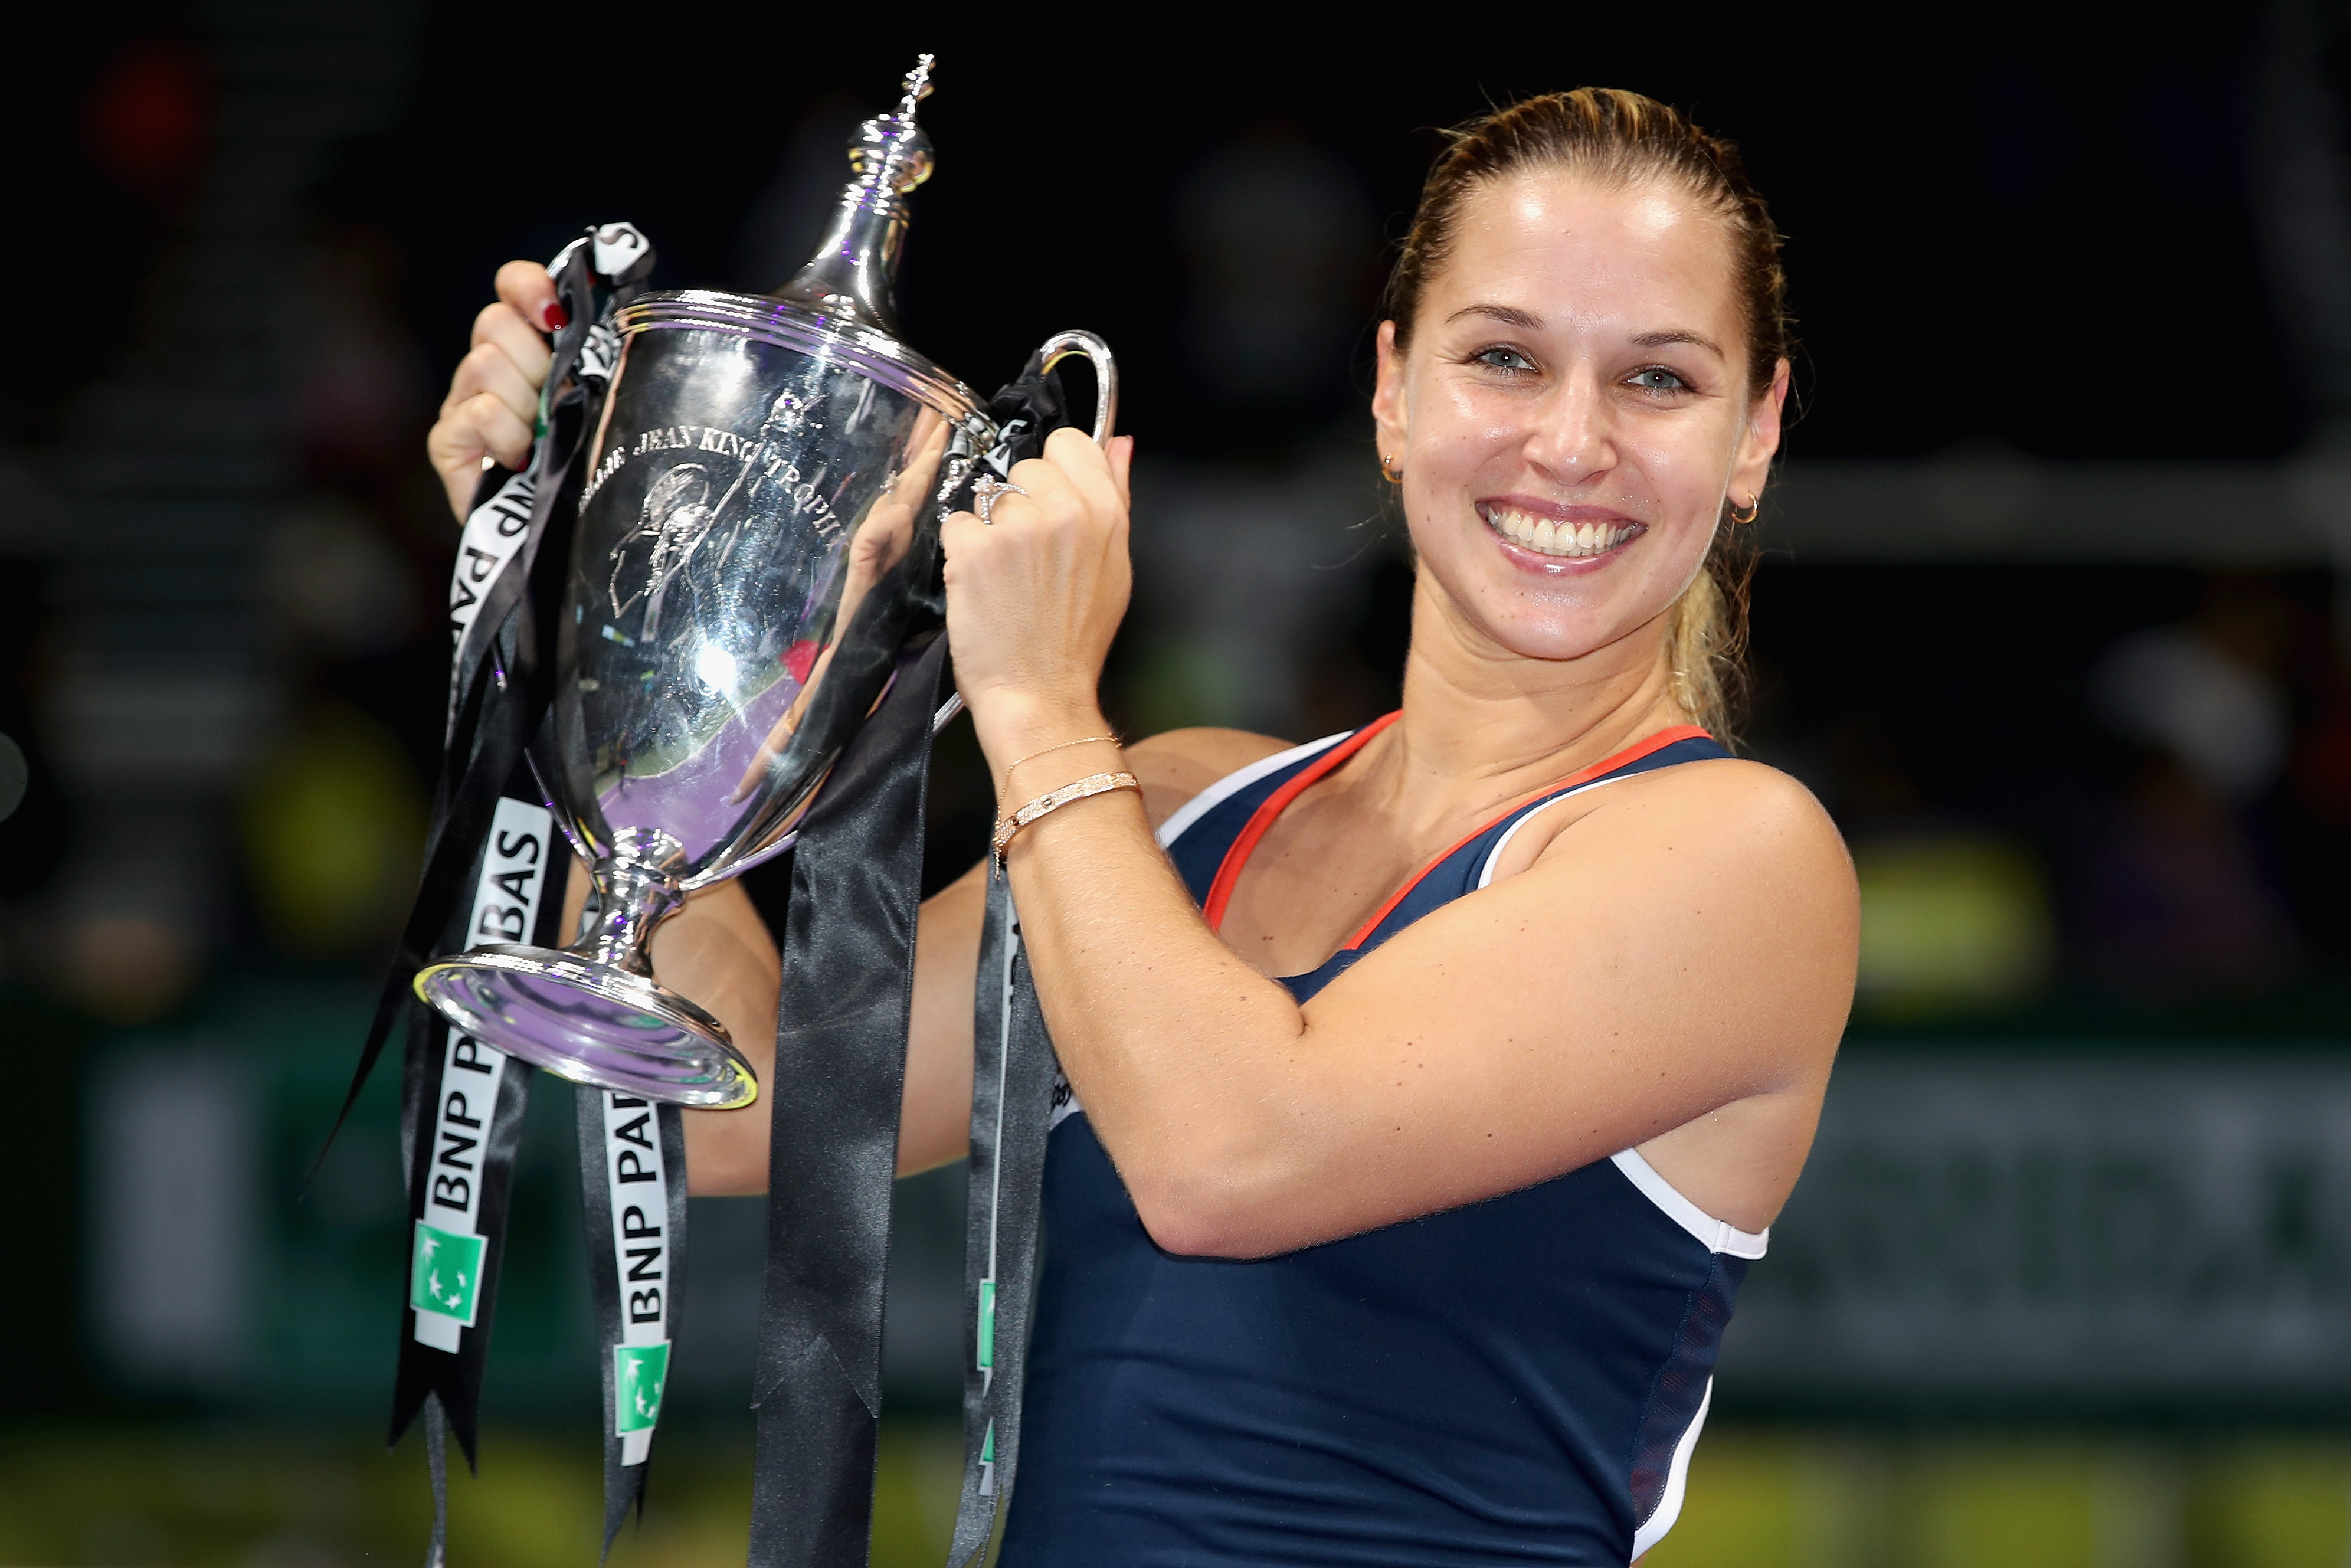 WTA Exit Interview: Cibulkova pens new chapter with retirement announcement, new memoir